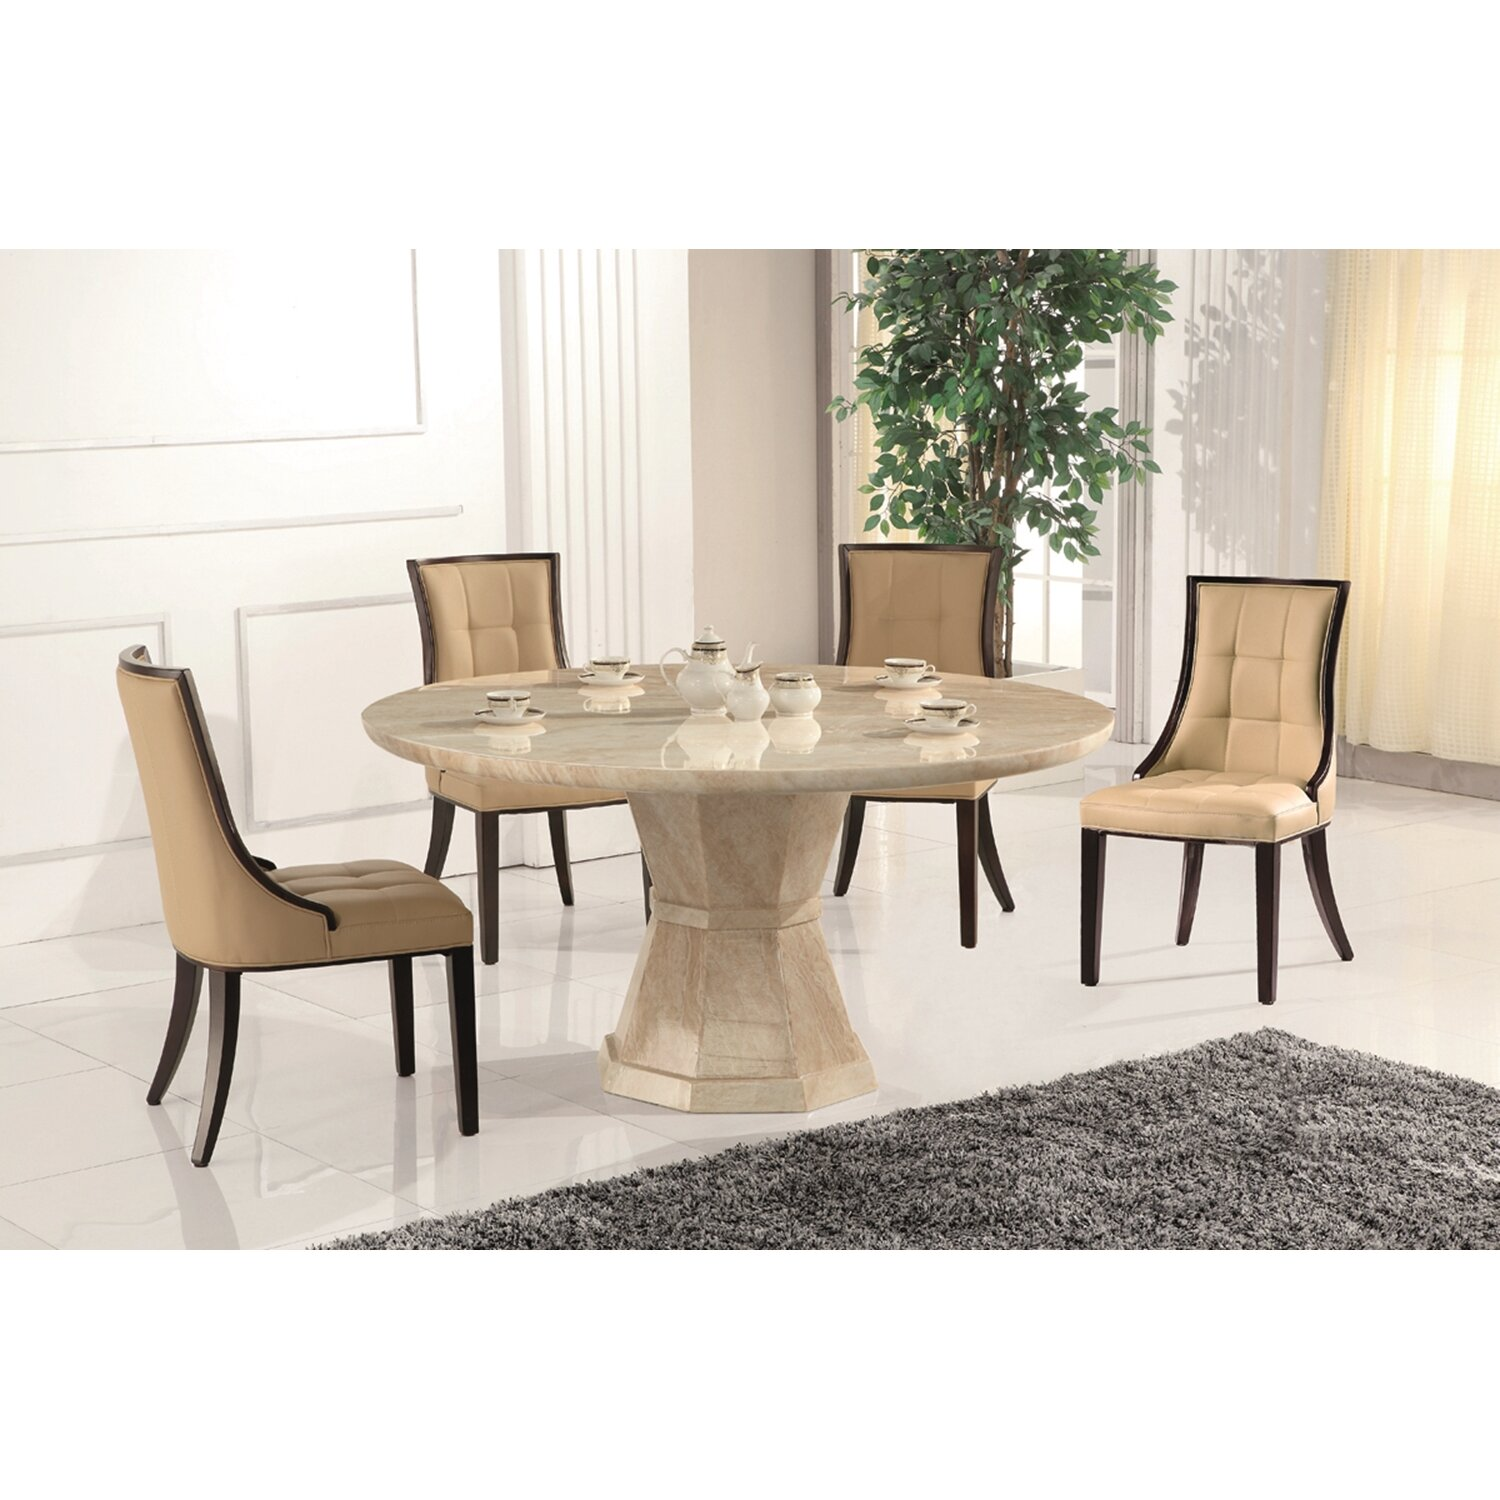 Homestead Living Rubberwood Upholstered Dining Chair